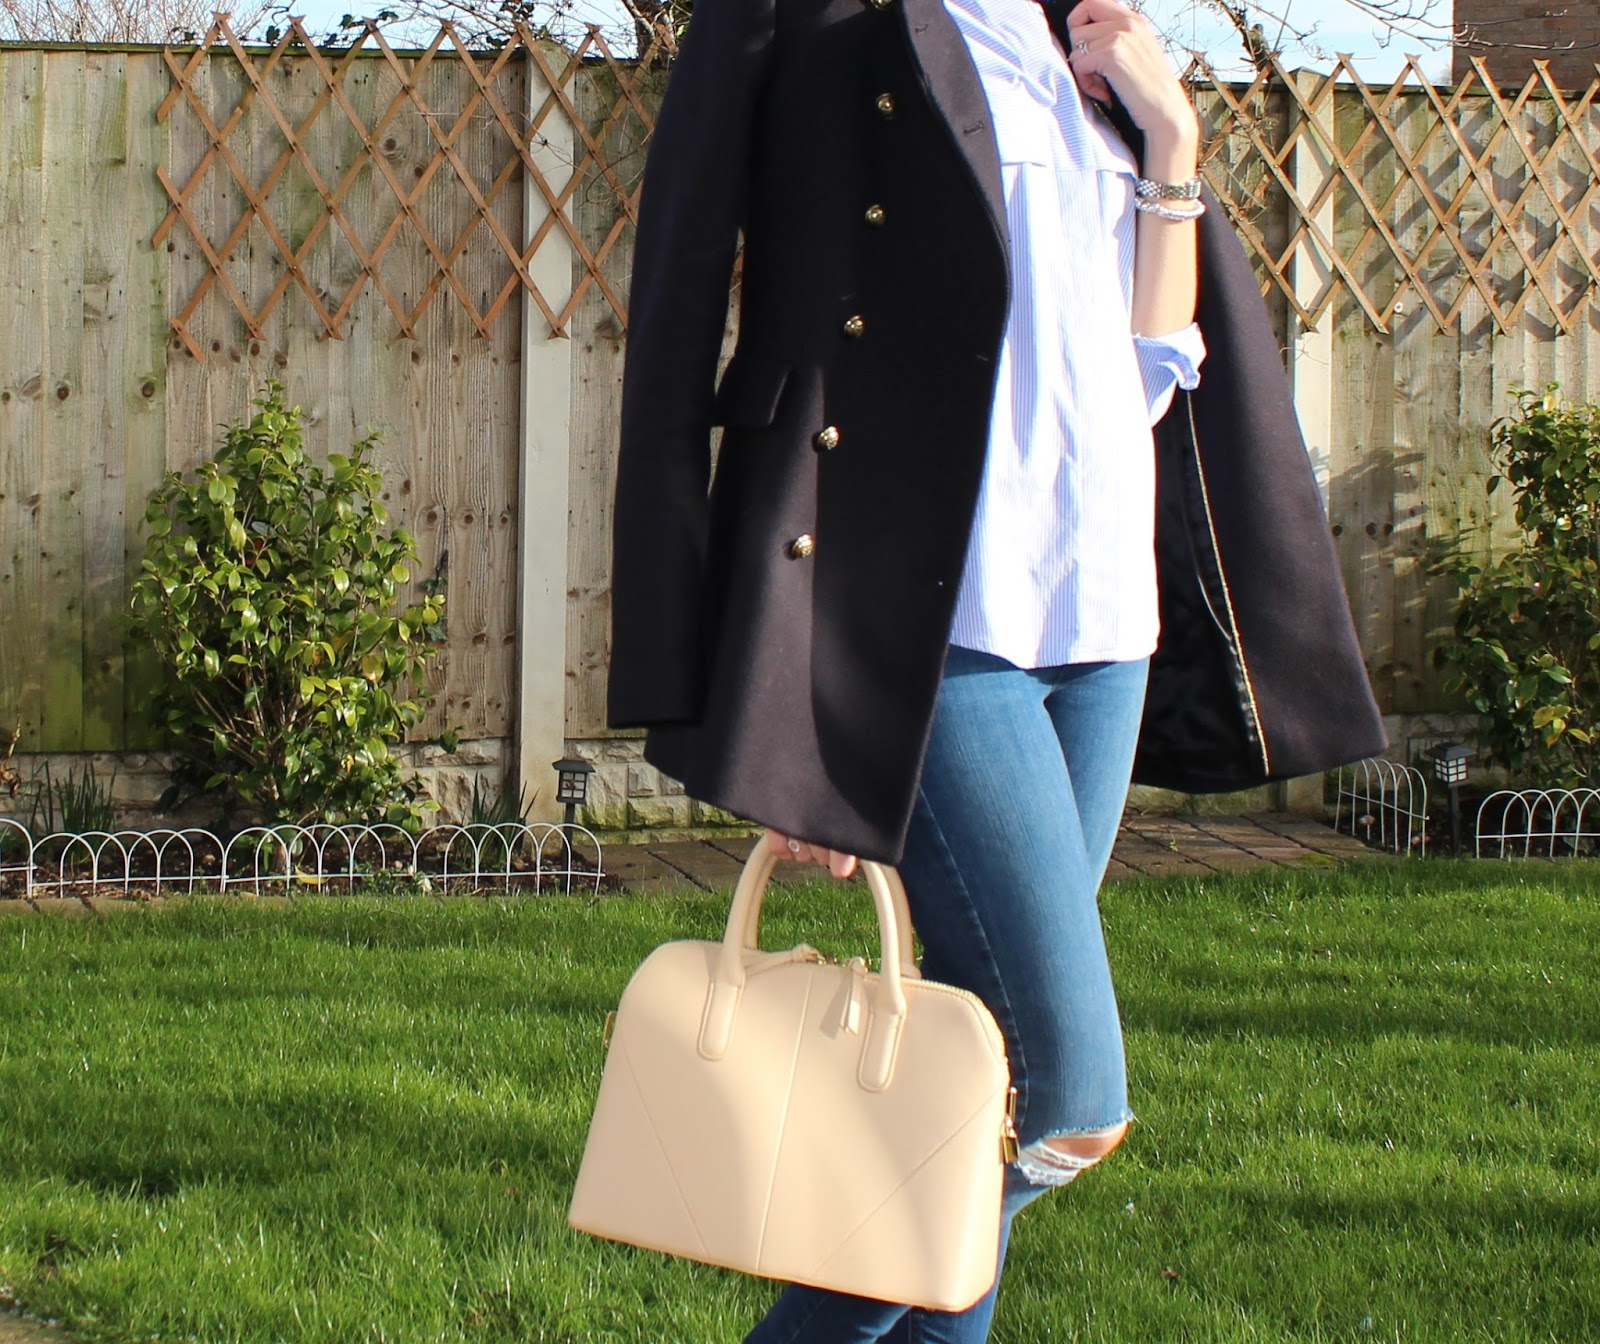 Military style navy blue peacoat with brass buttons from Zara